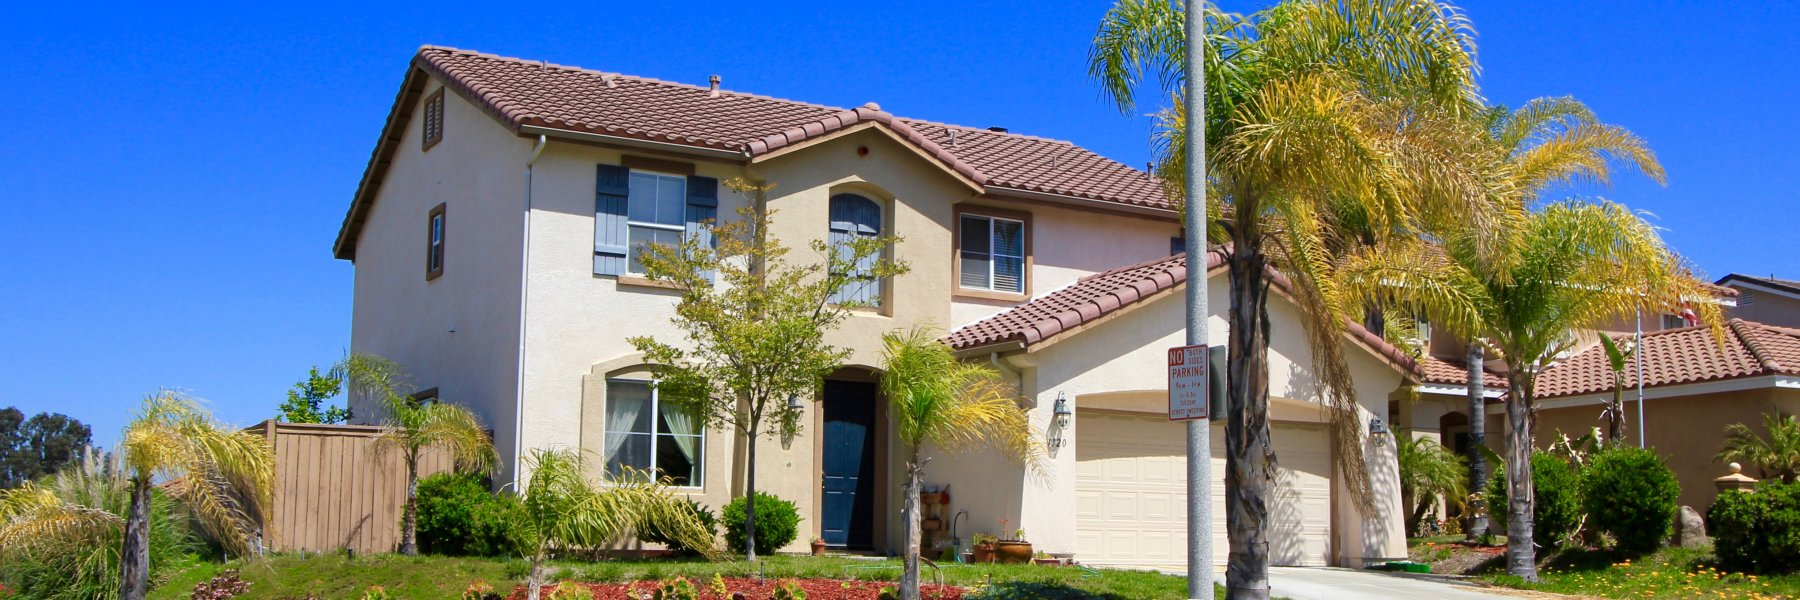 Mission Santa Fe is a community of homes in Oceanside California